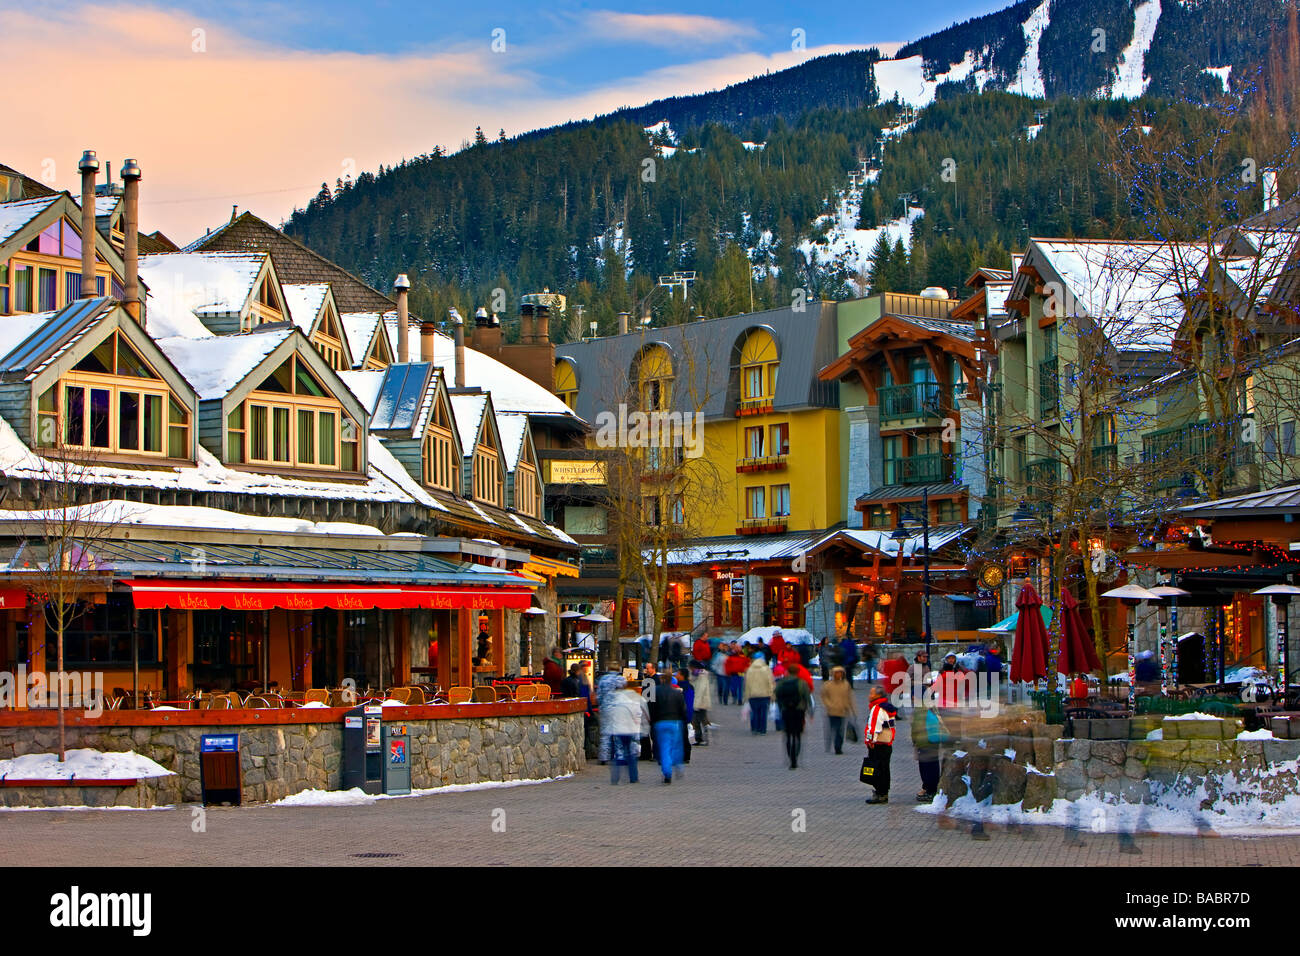 Pedestrian activity and shops along along the Village Stroll in Whistler Village British Columbia Canada - Stock Image